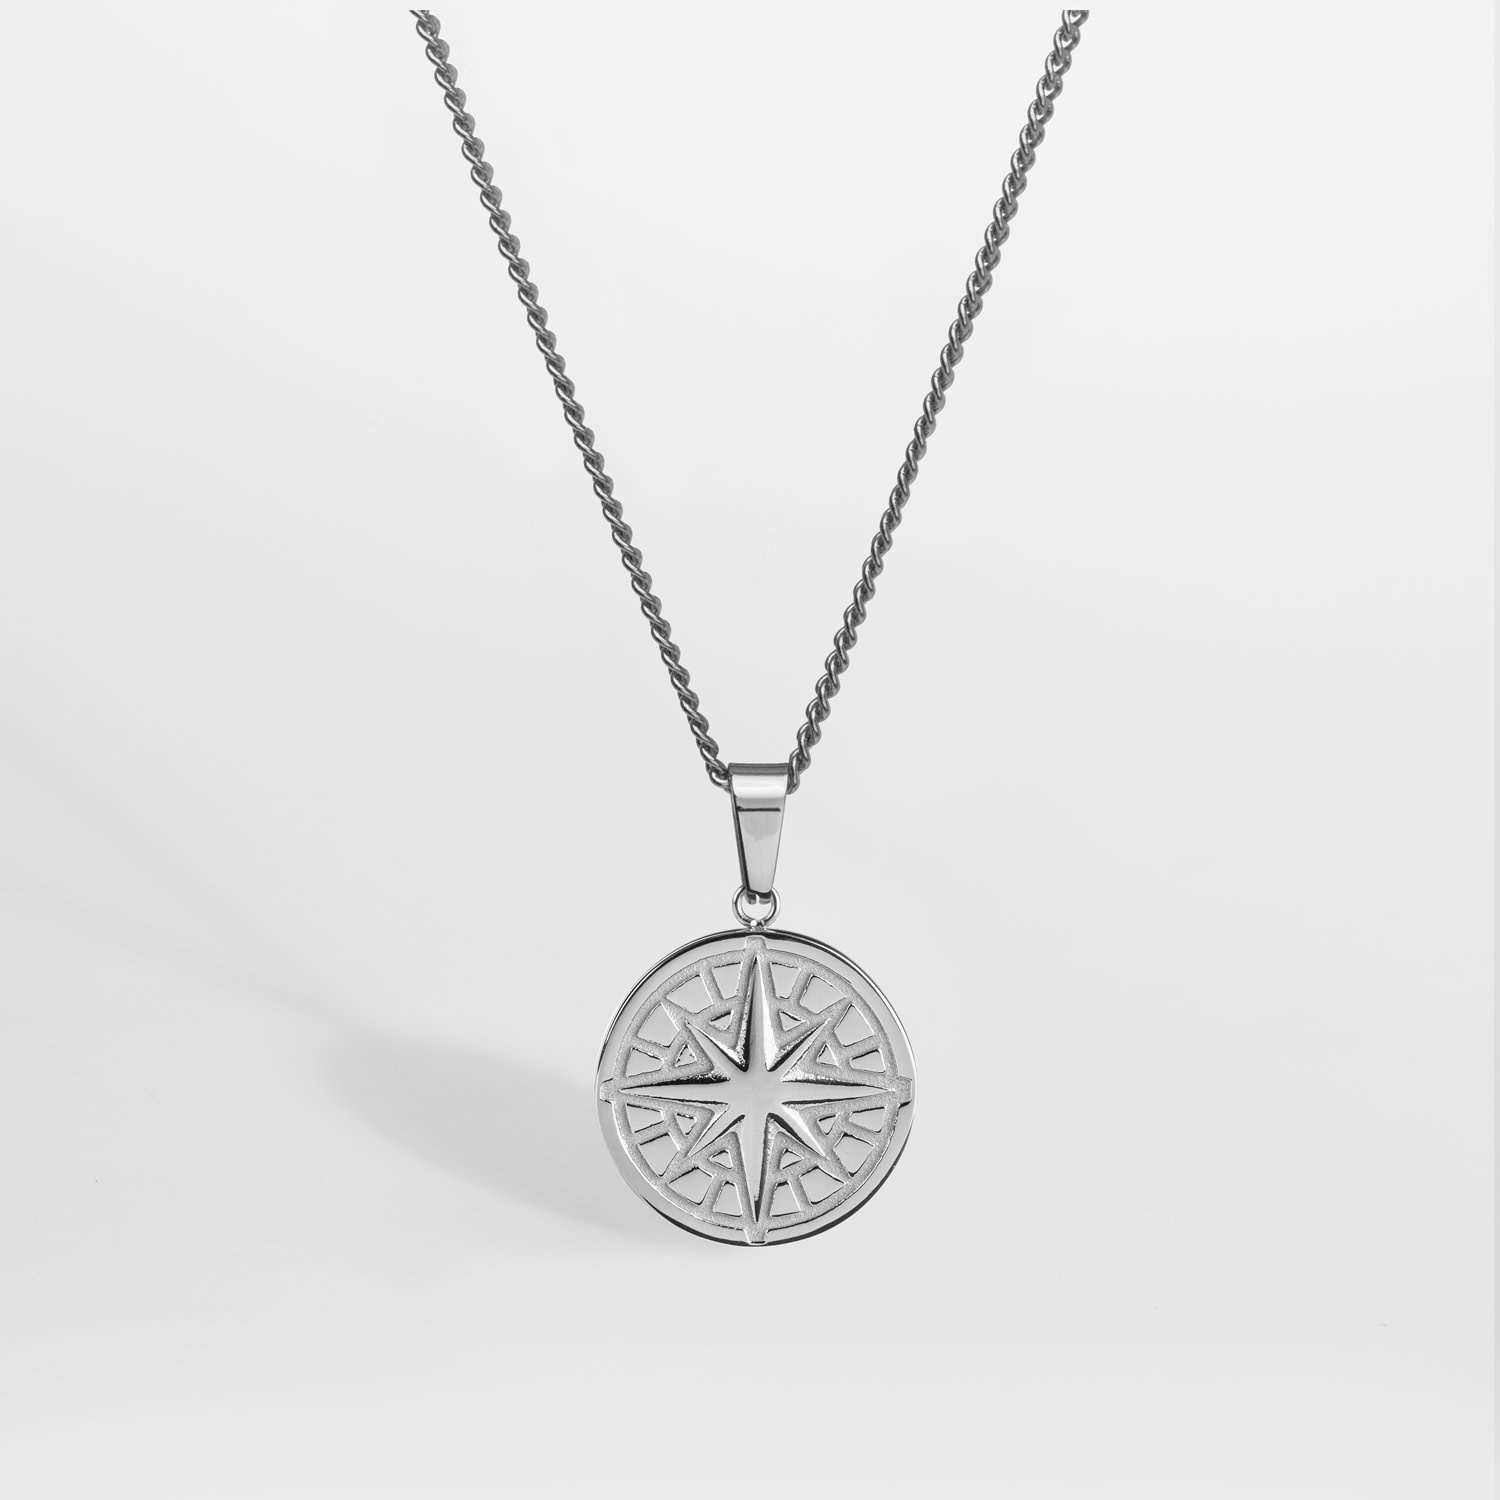 Northern Legacy Northern Legacy Compass Pendant 2.0 Necklace Silver